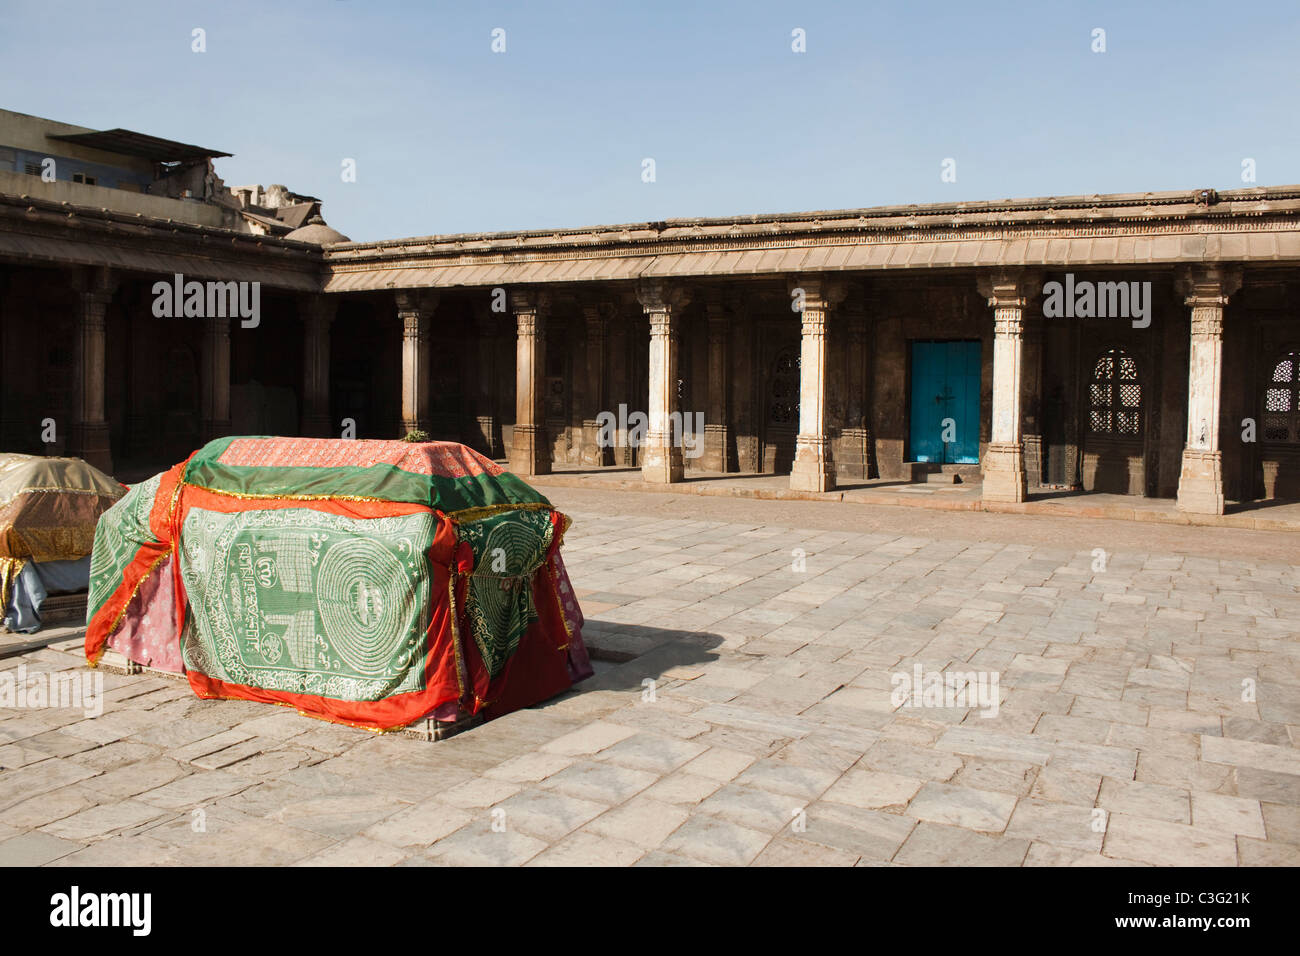 Tombstones at a mosque, Ahmedabad, Gujarat, India - Stock Image